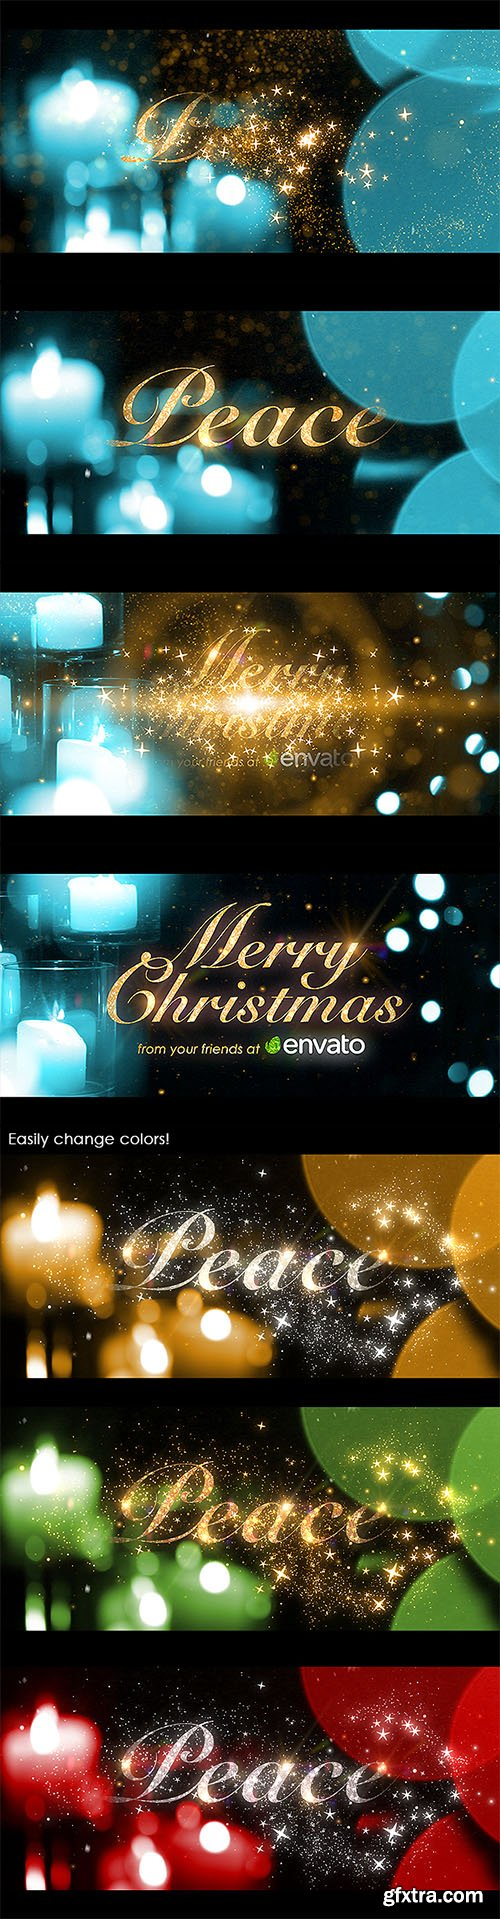 Videohive Christmas Aftereffects Files Page 9